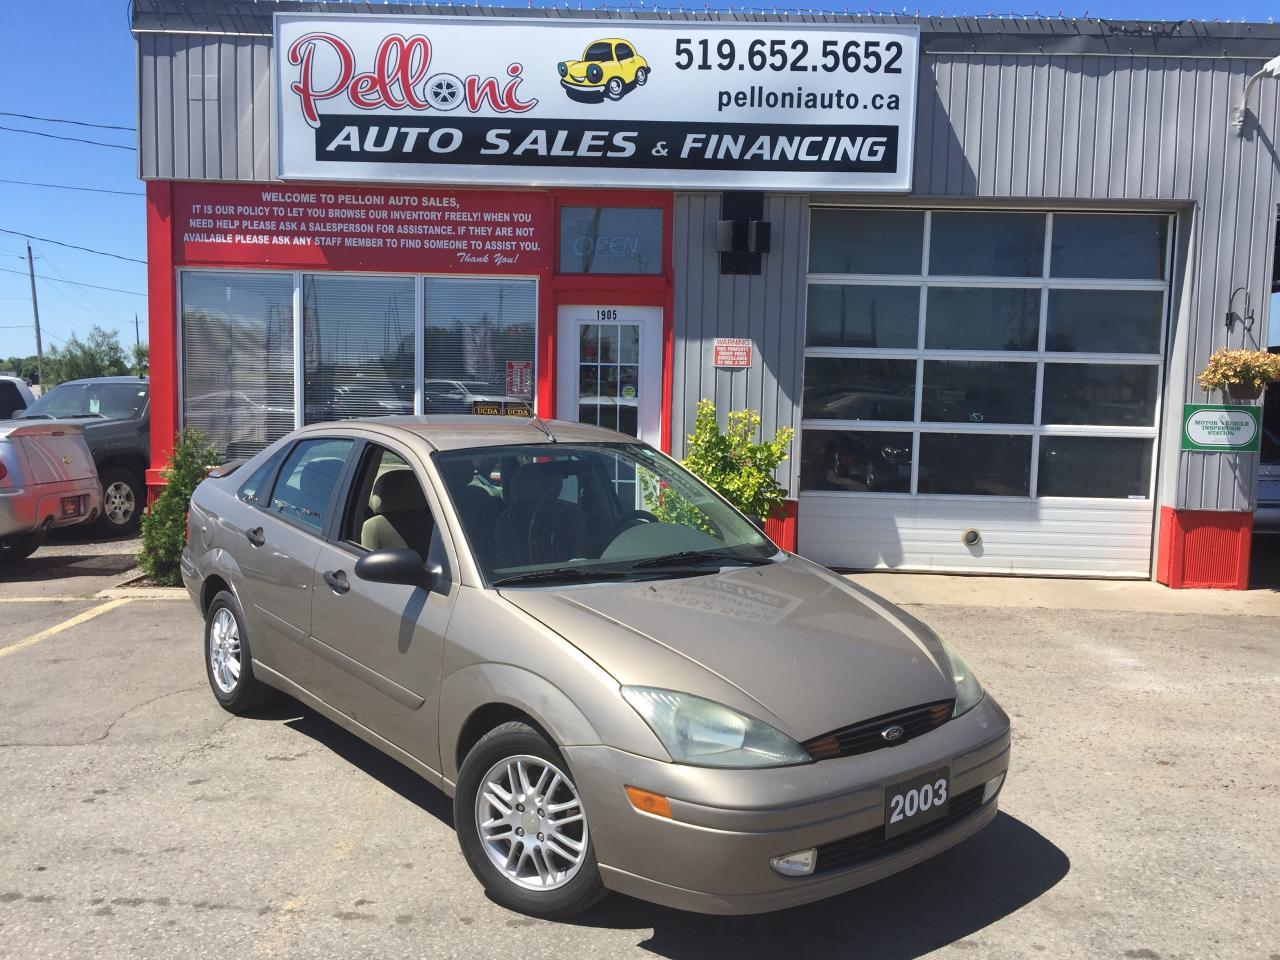 Used 2003 Ford Focus Se Sport Remote Start New Tires For Sale In Help